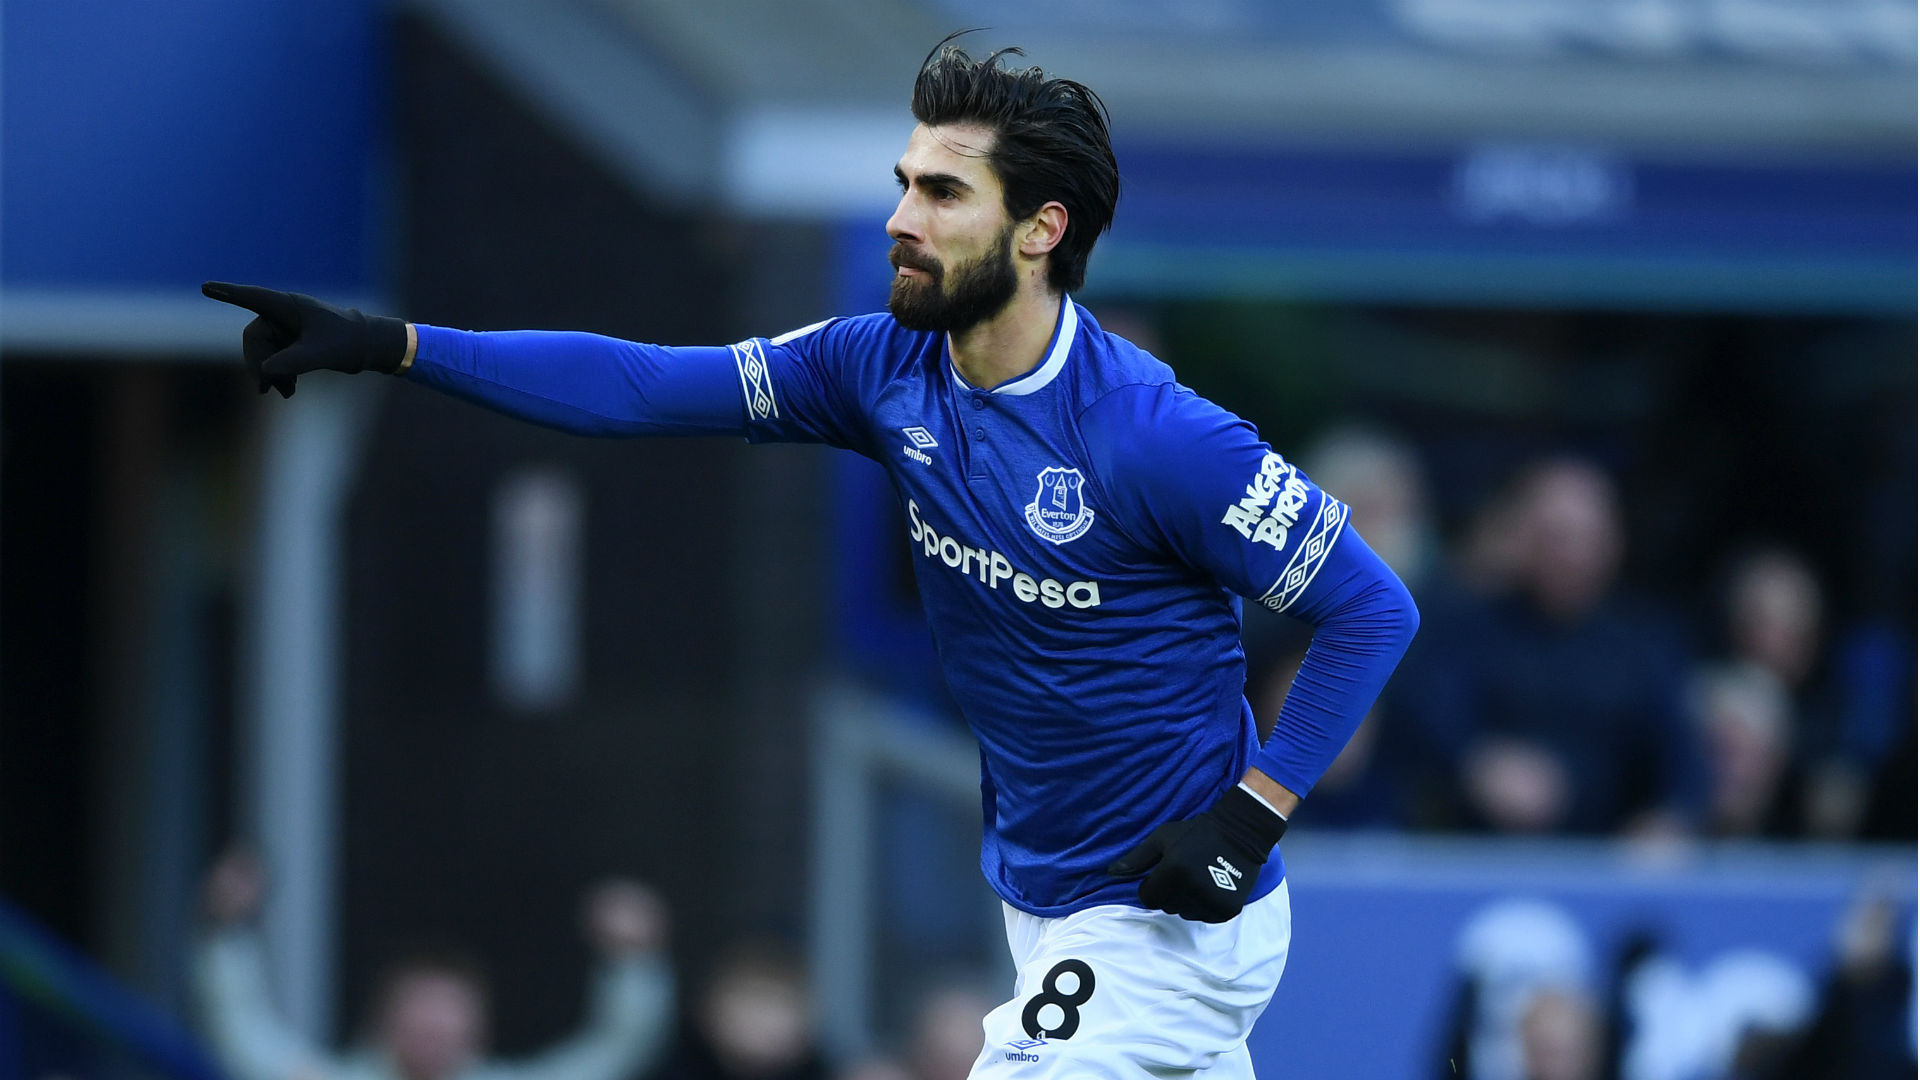 Everton complete £22million Gomes signing